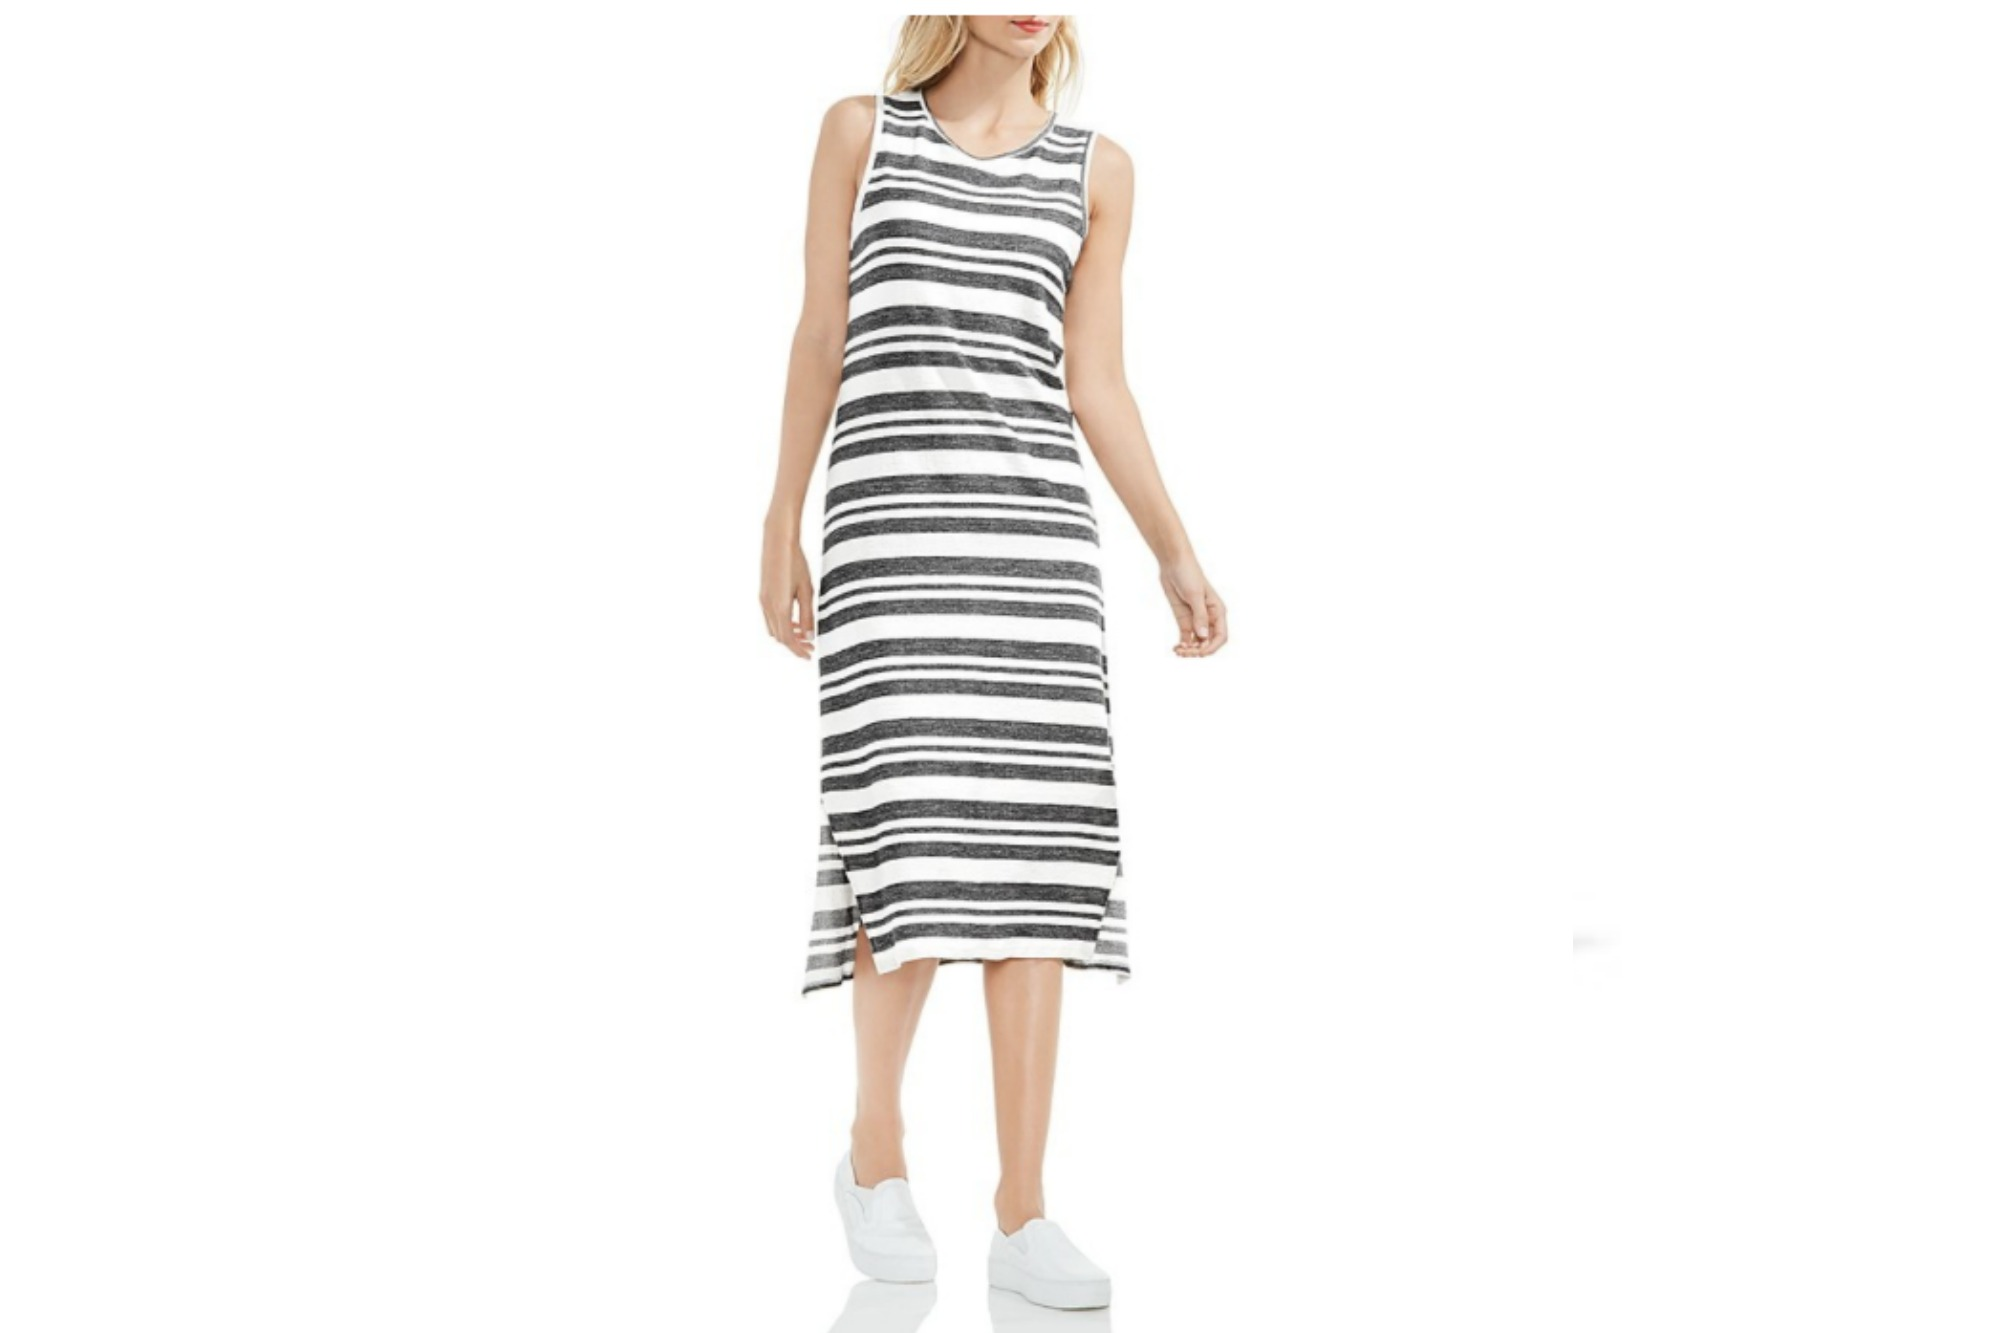 Vince Camuto Striped Dress